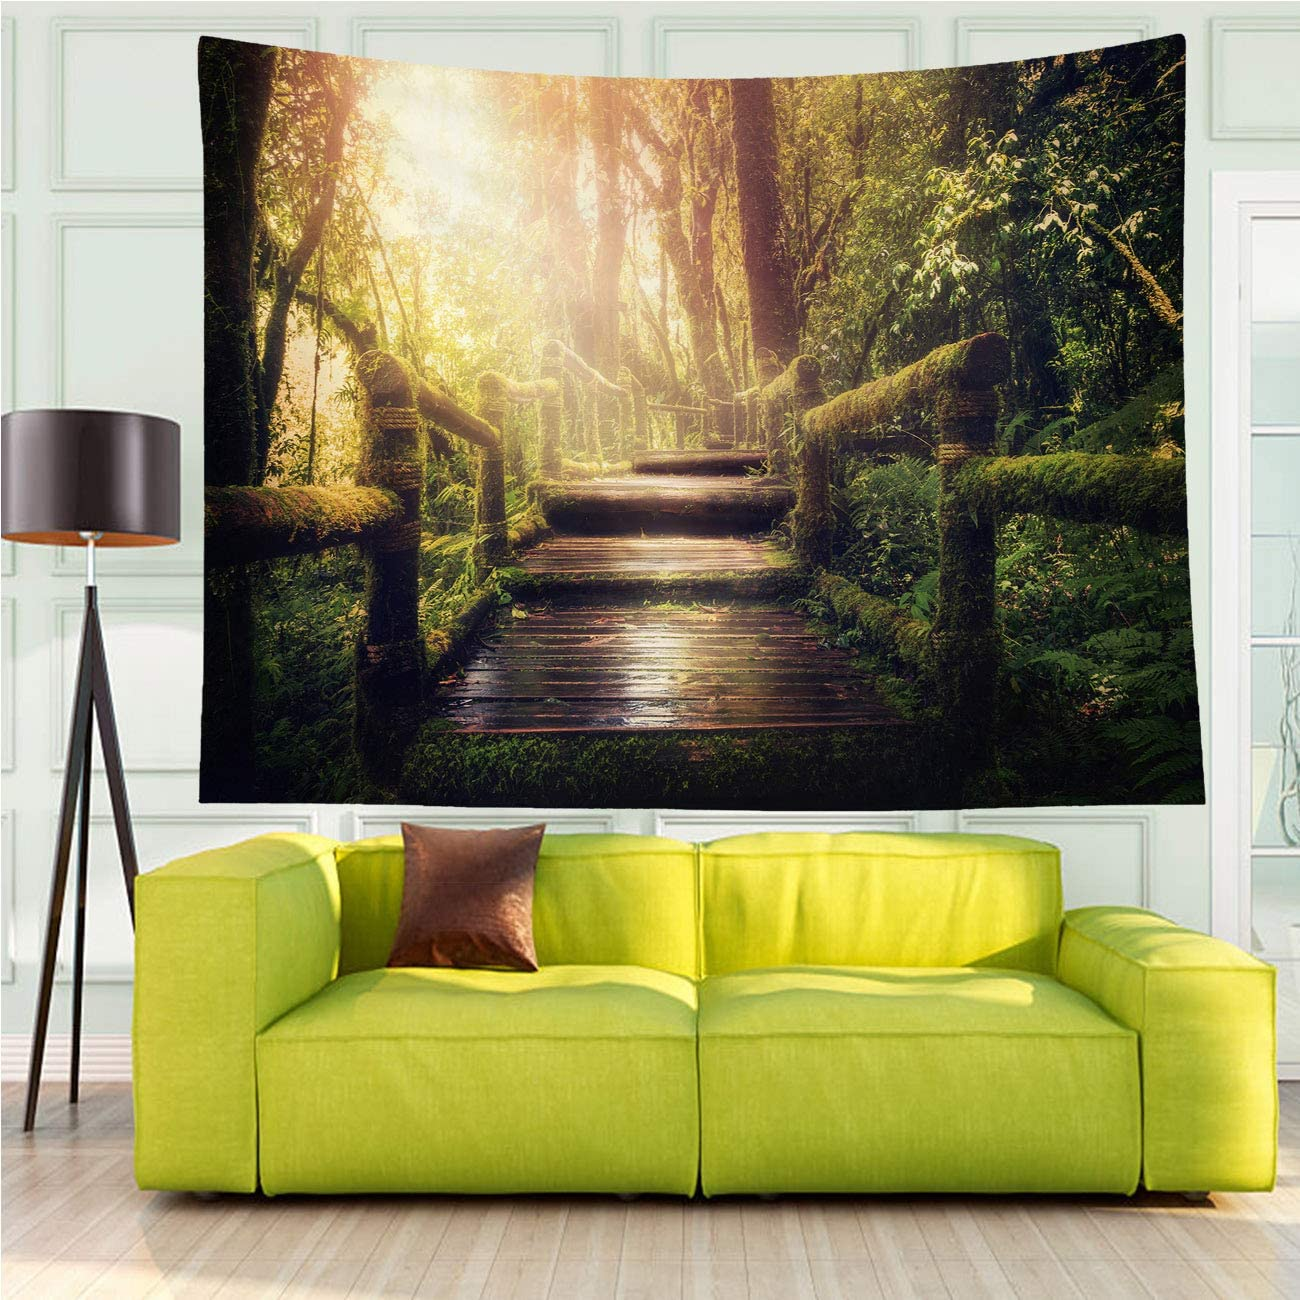 MinGz Rainforest Wall Tapestry Versatile,Jungle Trees Mystery Lighting Fairy Moss Forest Path Plank Rainforest Green,Tapestry for Living Room Bedroom Dorm Home Decor,70x50 in